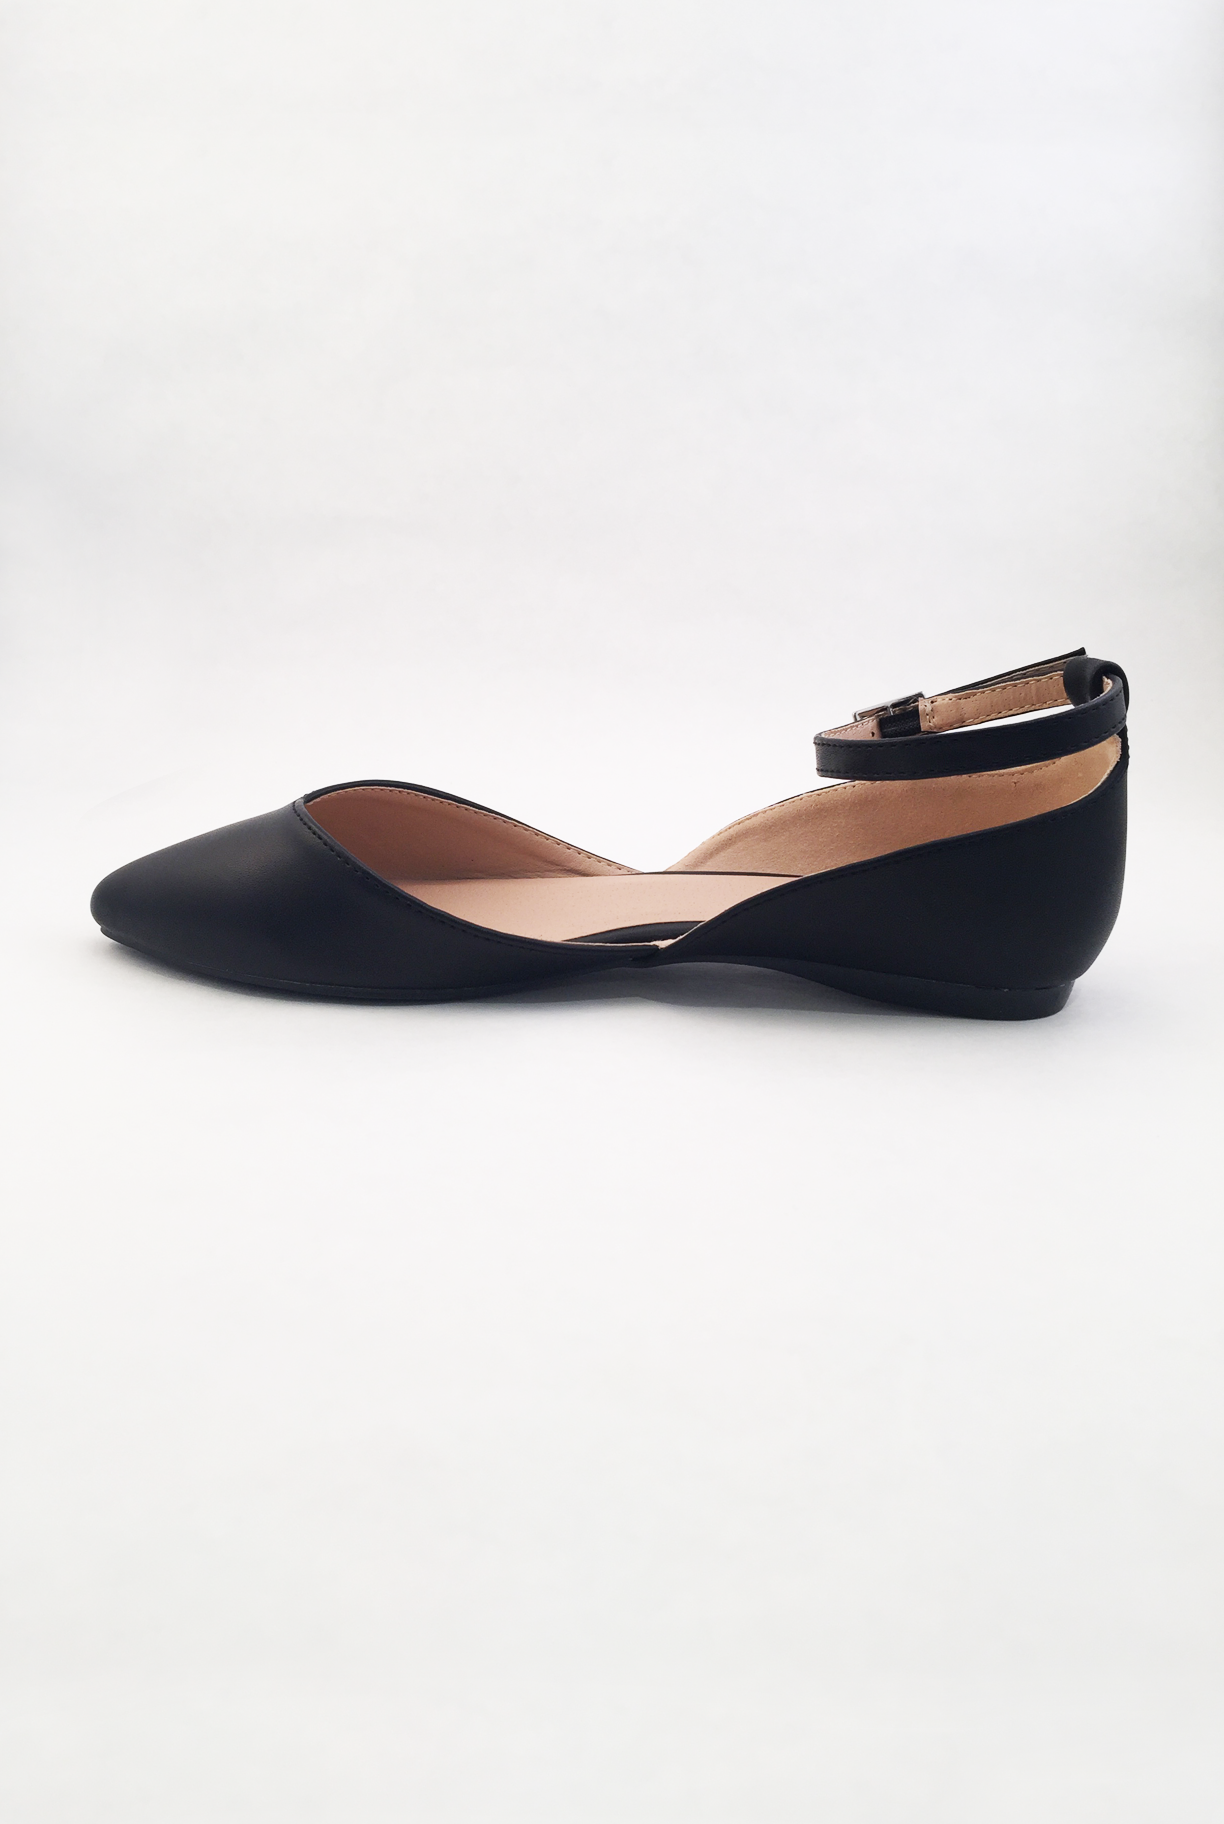 49b3b65a406 Take a bow in these simple and classy ballet slippers. This vegan leather